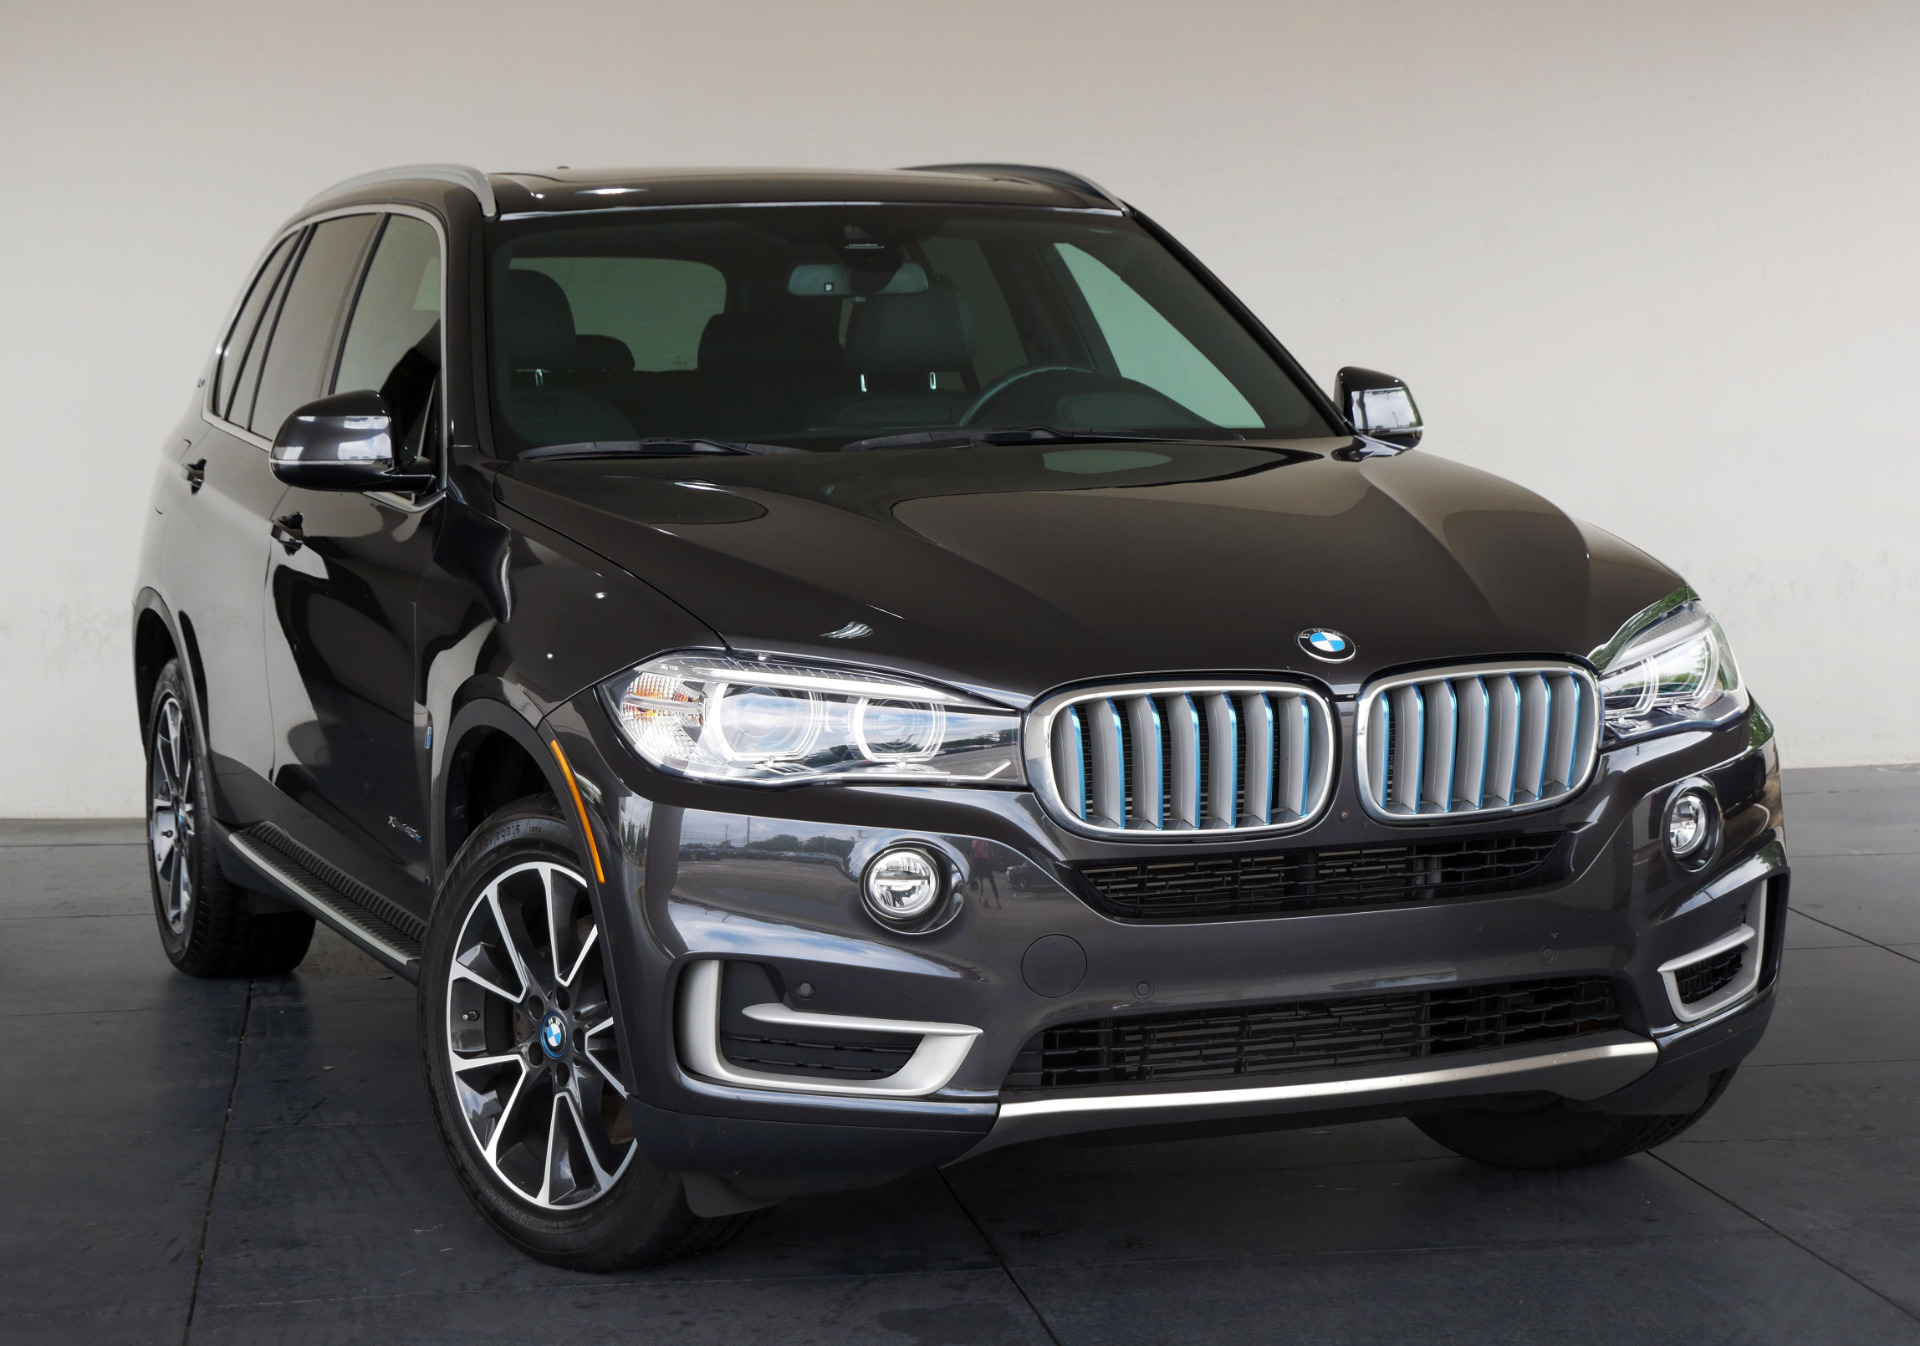 used 2018 bmw x5 xdrive40e marietta ga. Black Bedroom Furniture Sets. Home Design Ideas